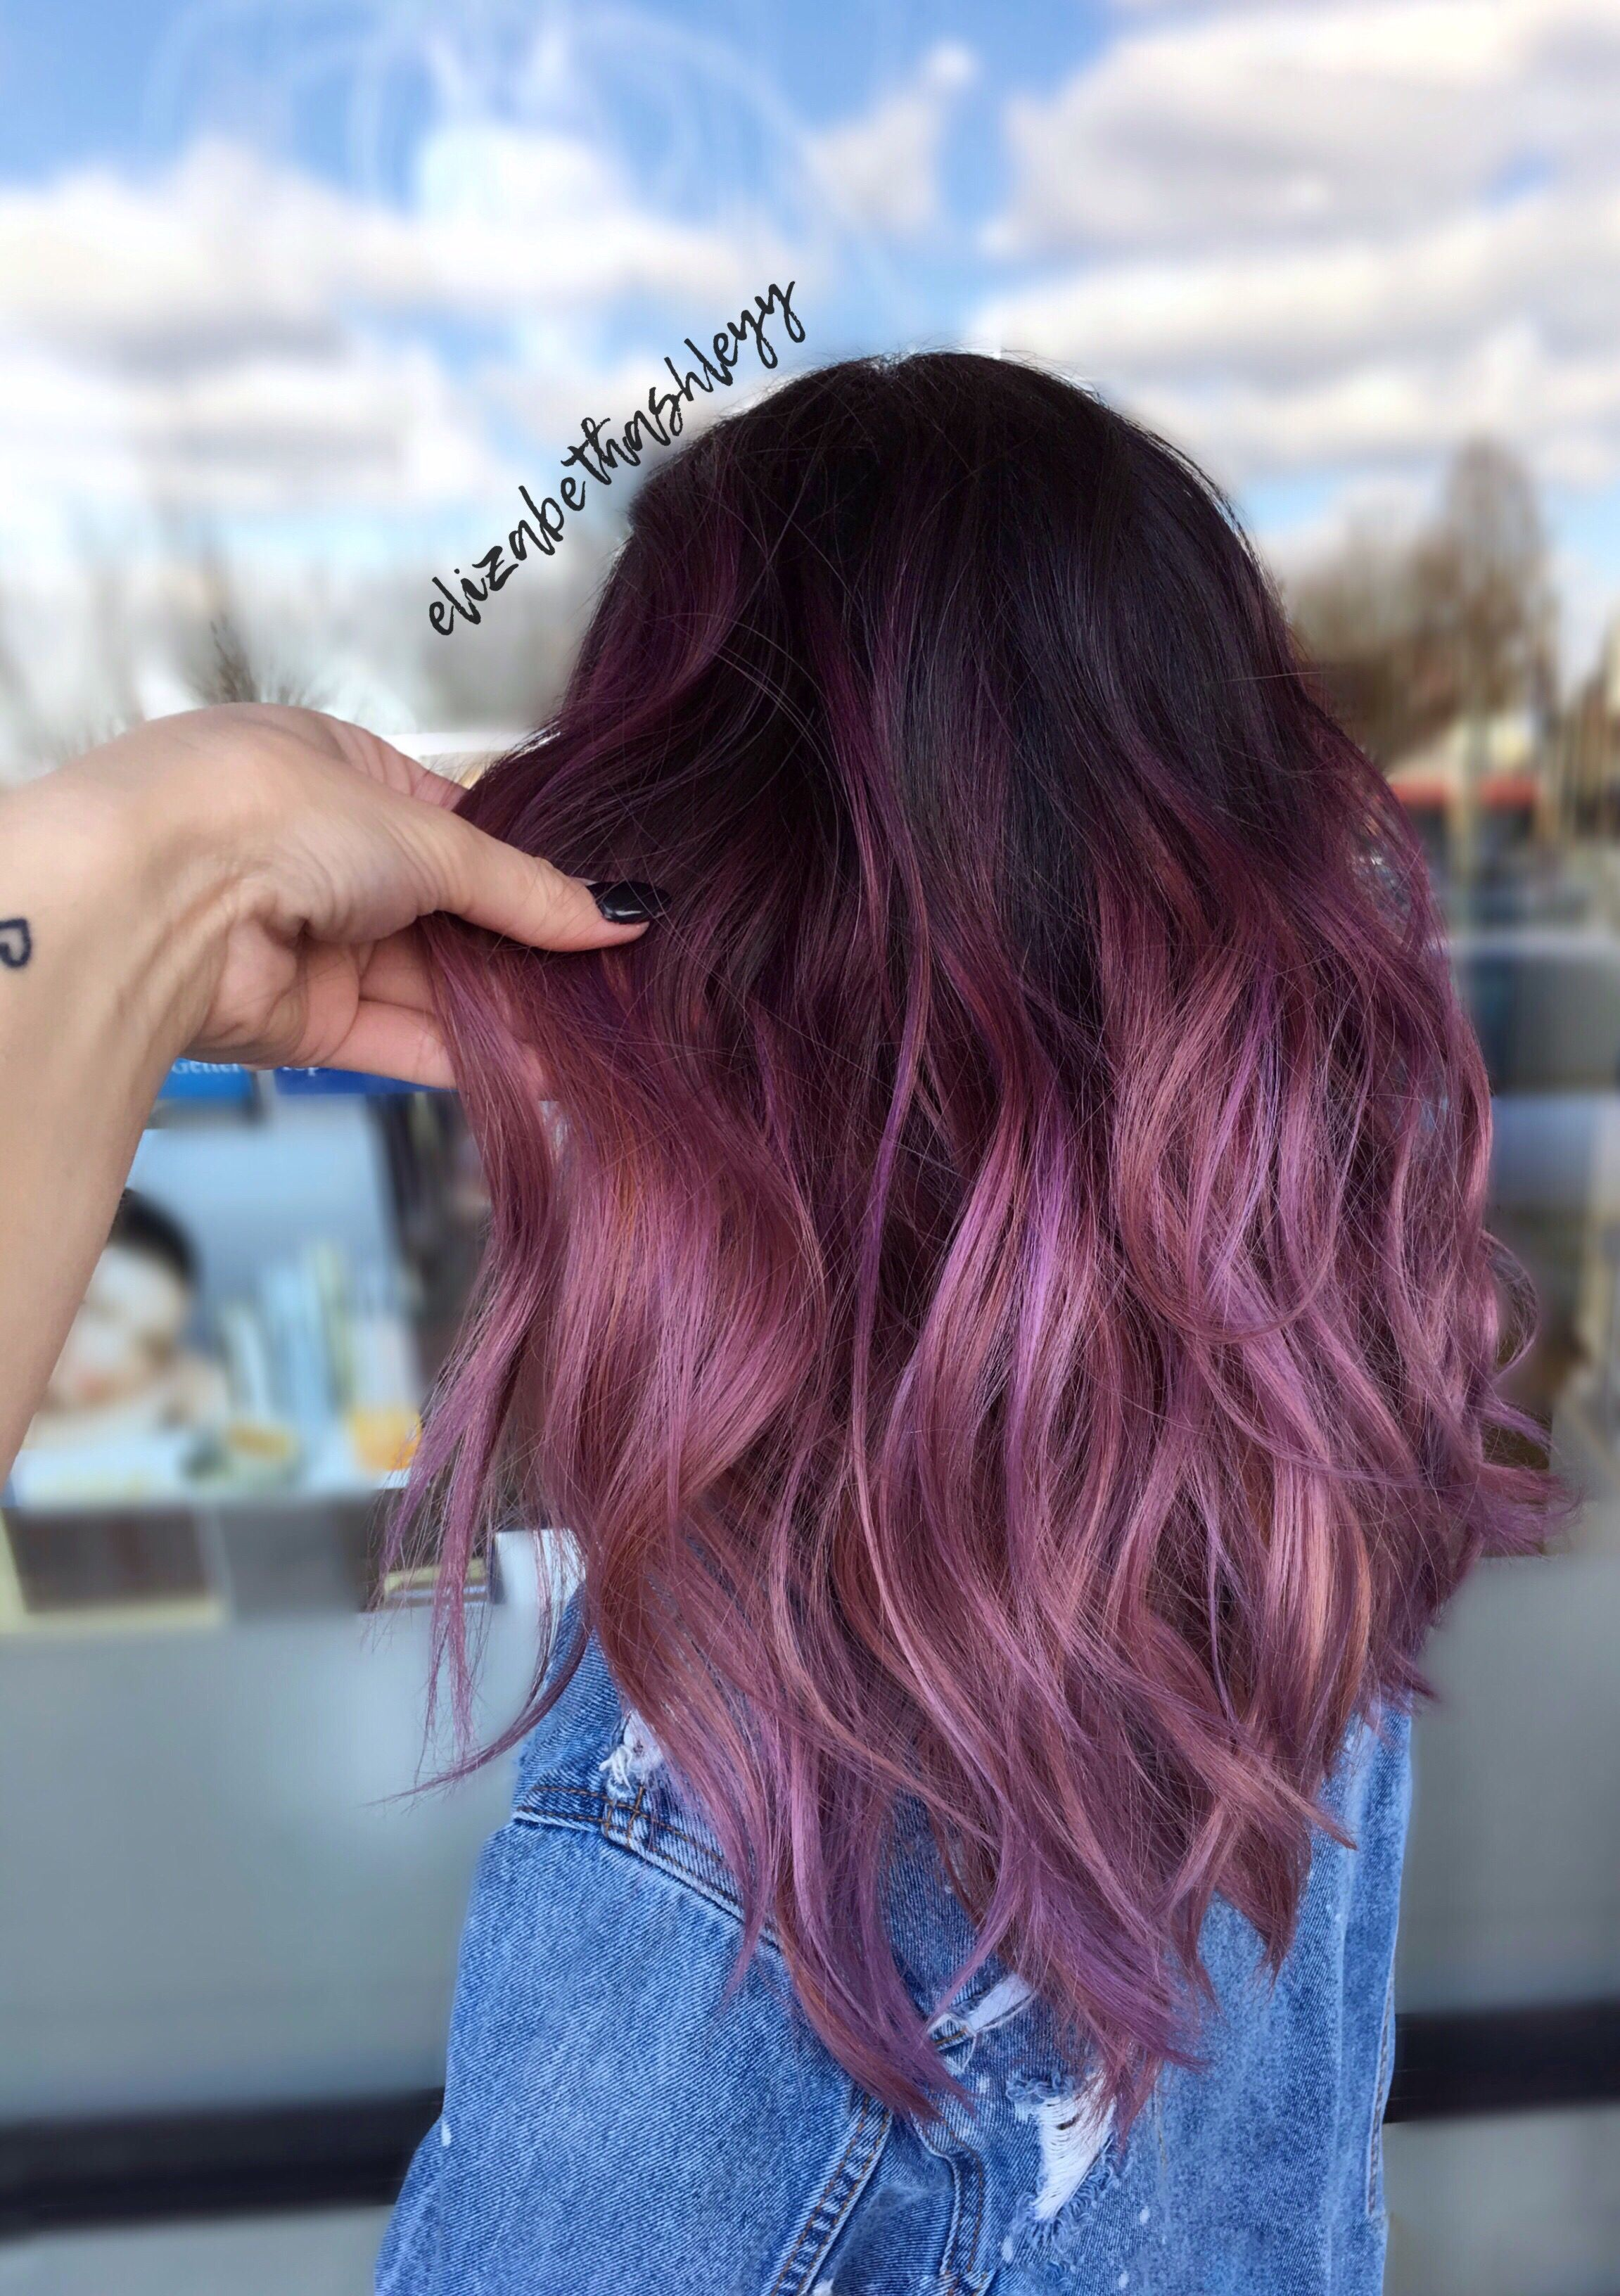 Balayage mermaid hair black to magenta ombré elizabethashleyy